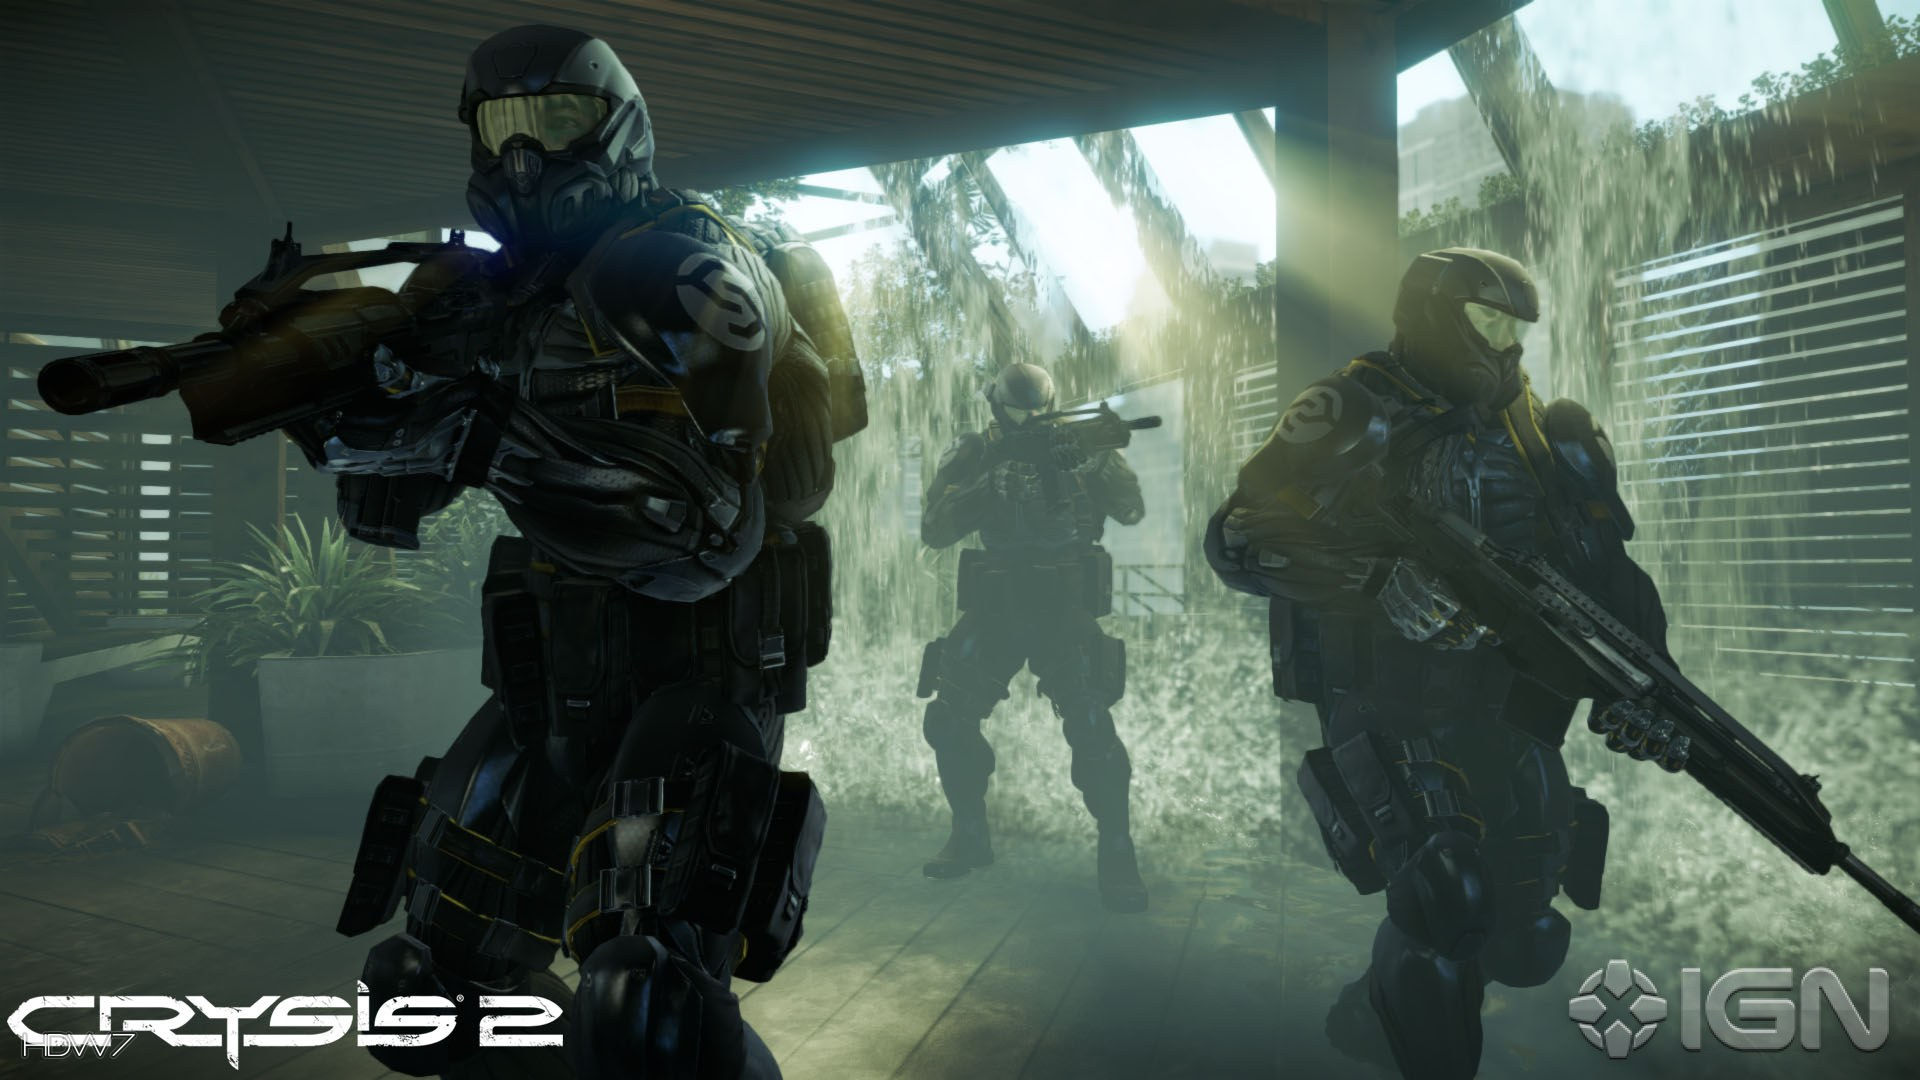 Crysis 2 Cell Soldiers On Patrol Widescreen Hd Wallpaper